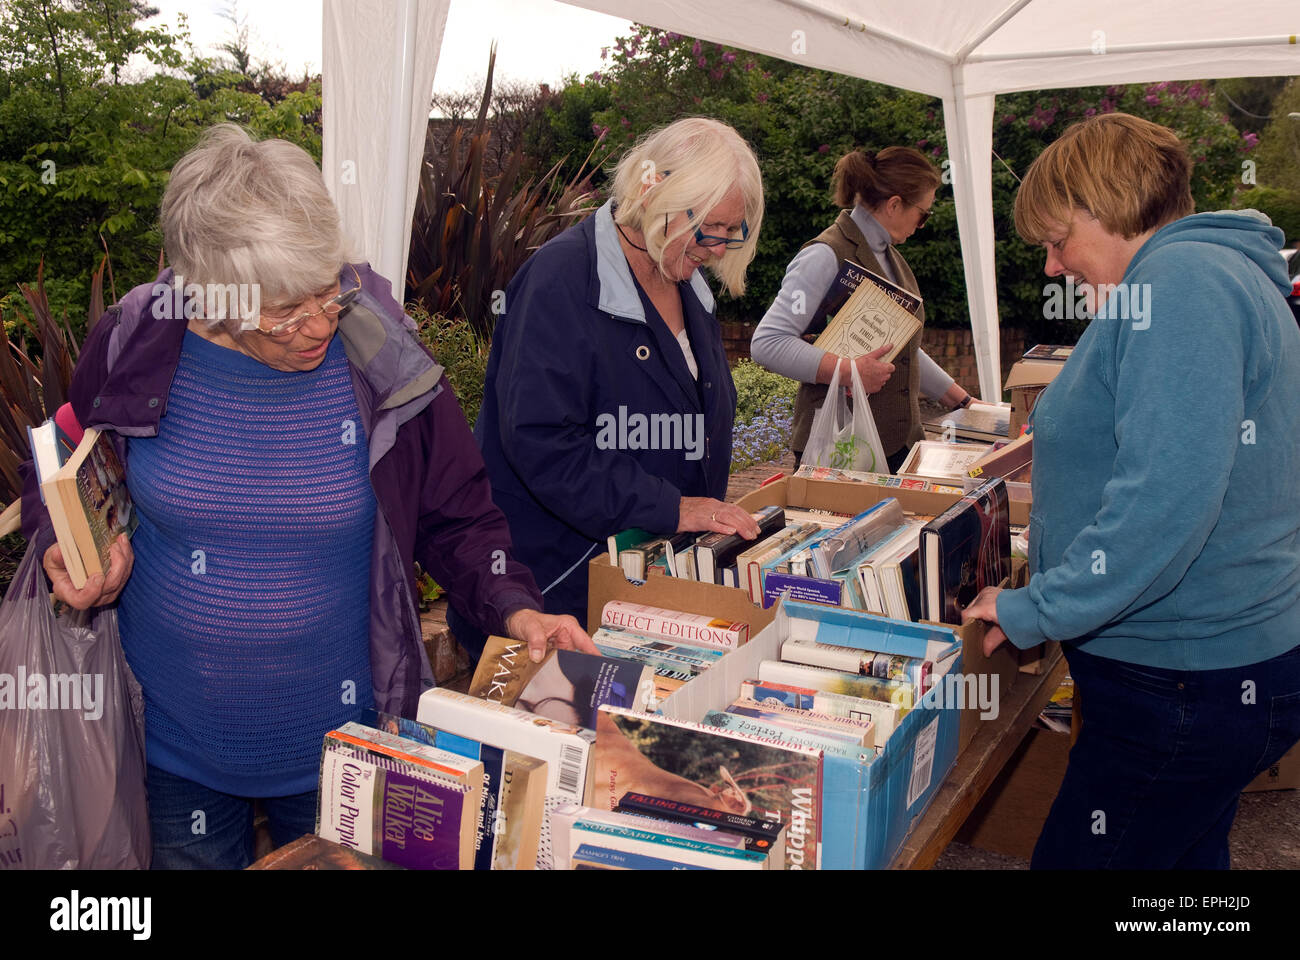 Women perusing the bookstall at a May Fayre, Oakhanger, Hampshire, UK. - Stock Image